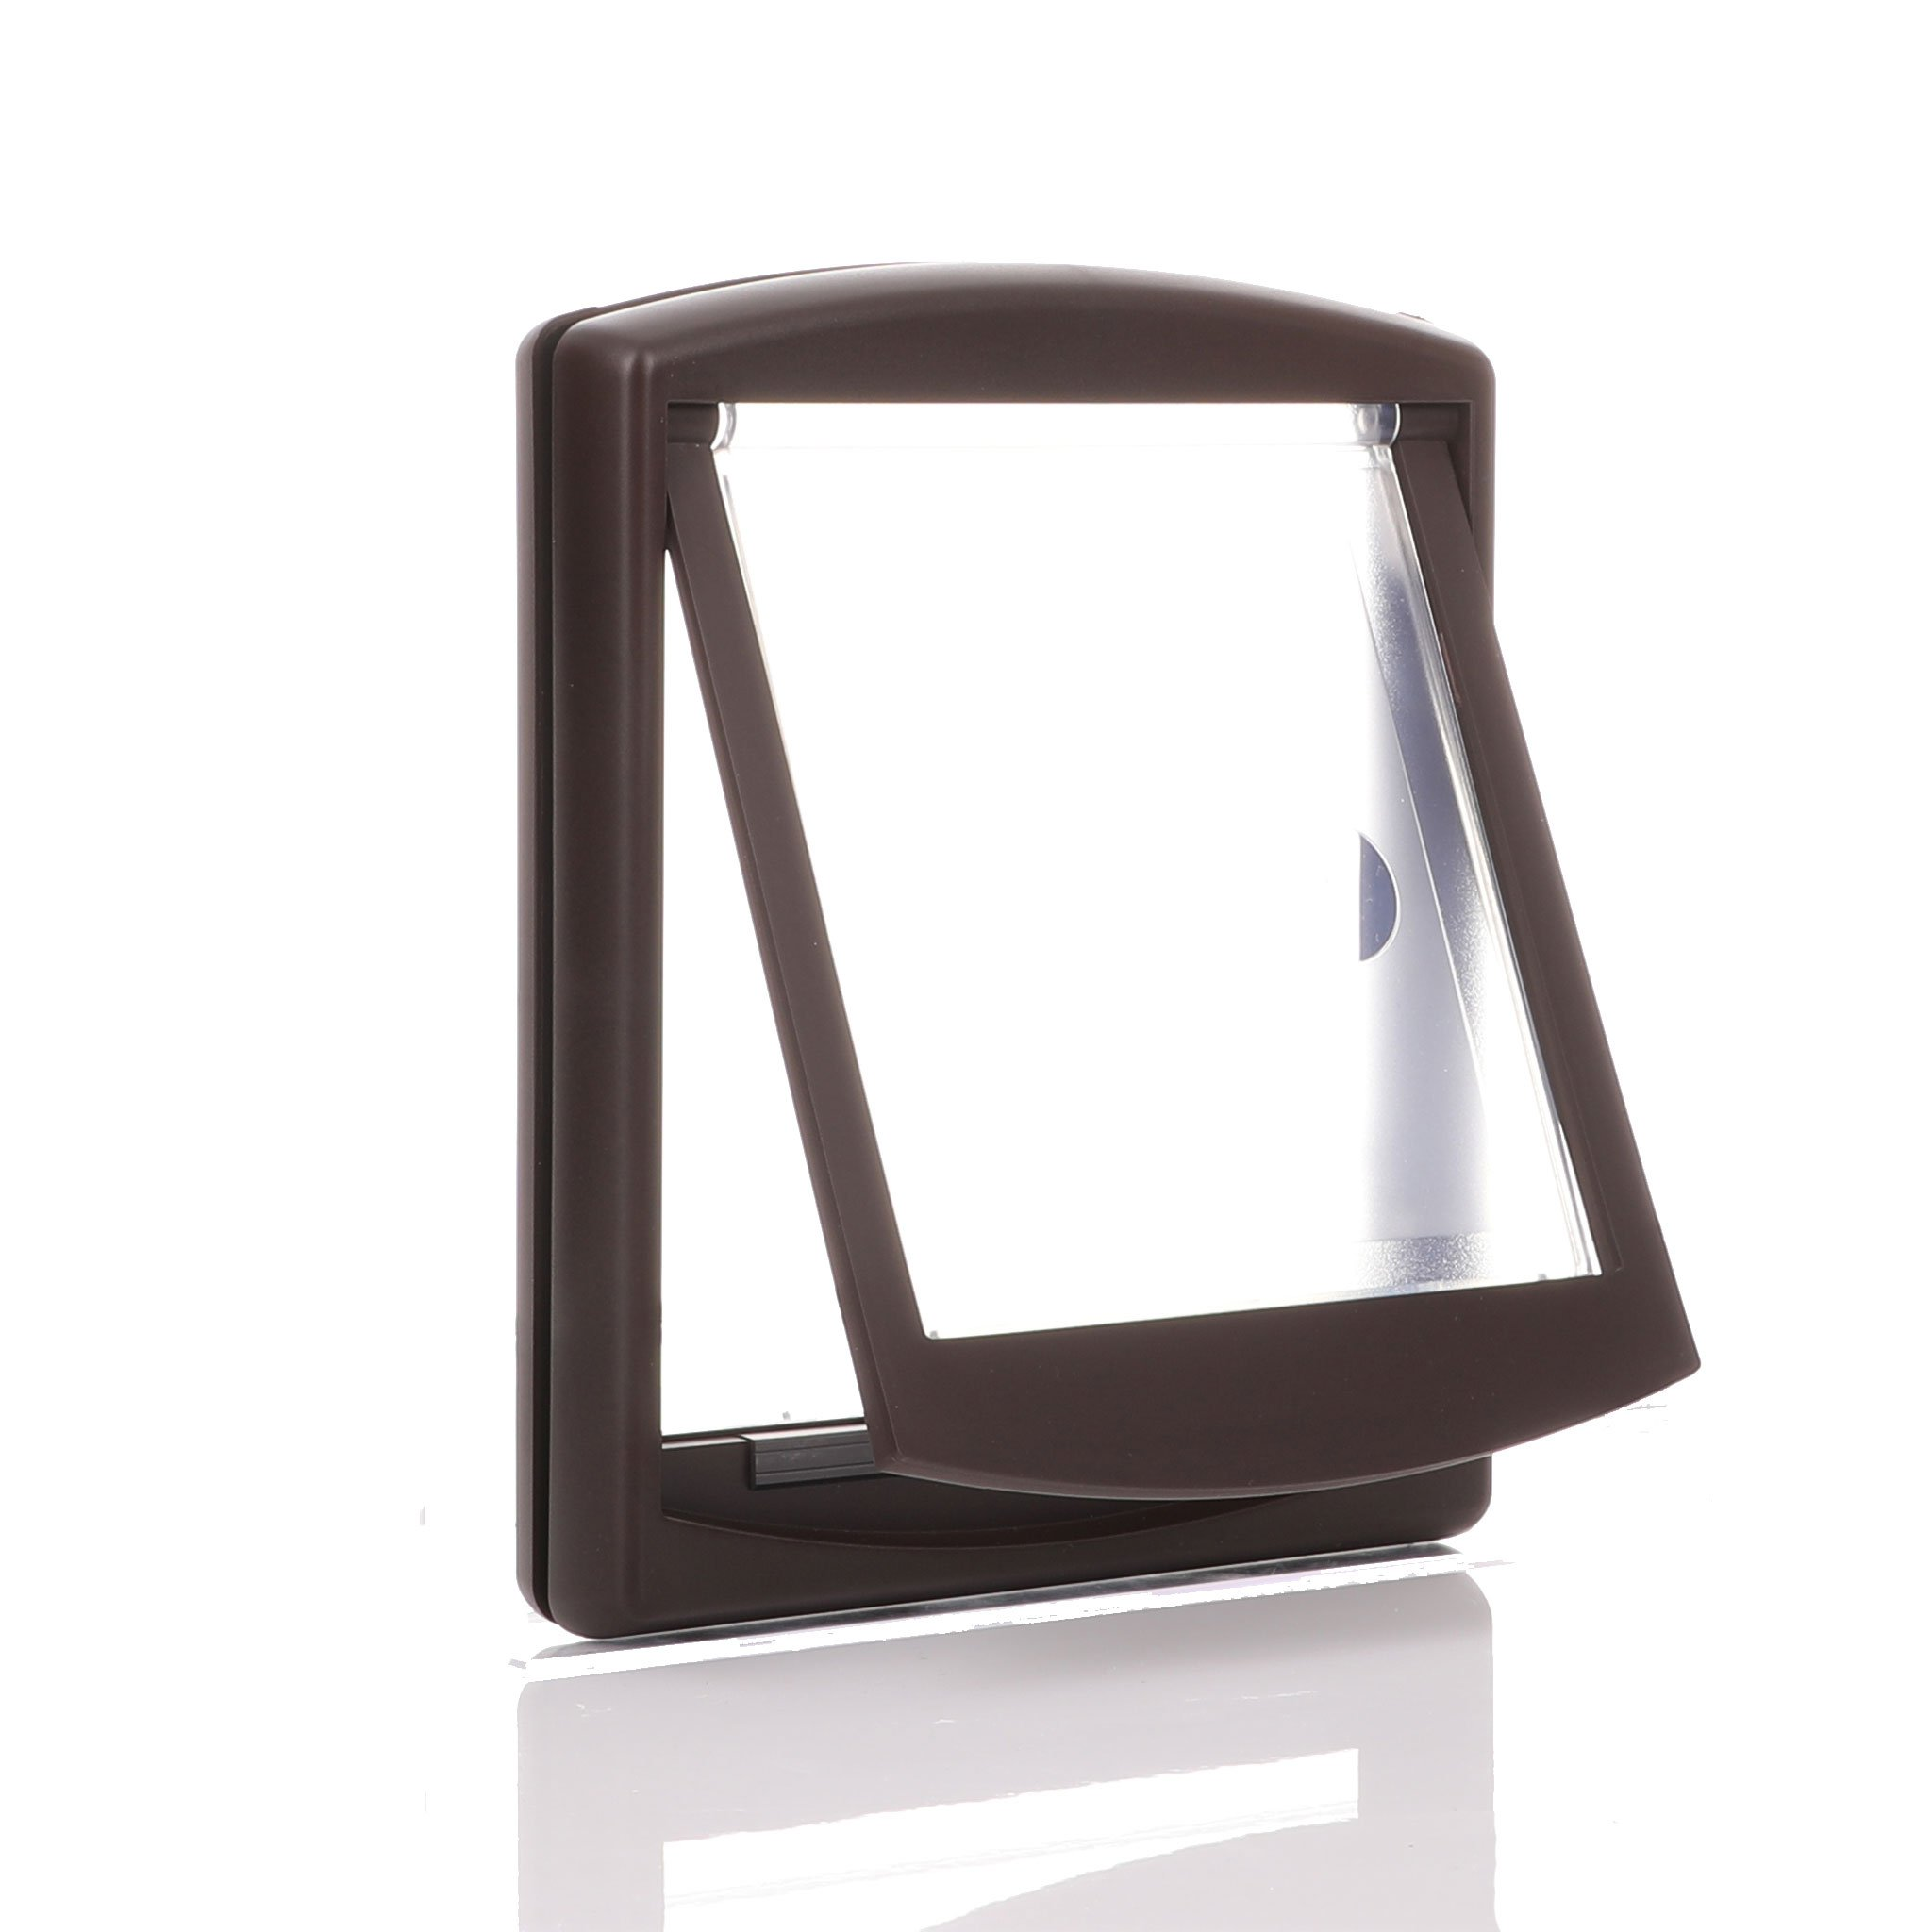 Brown frame with a clear flap and an internal barrier